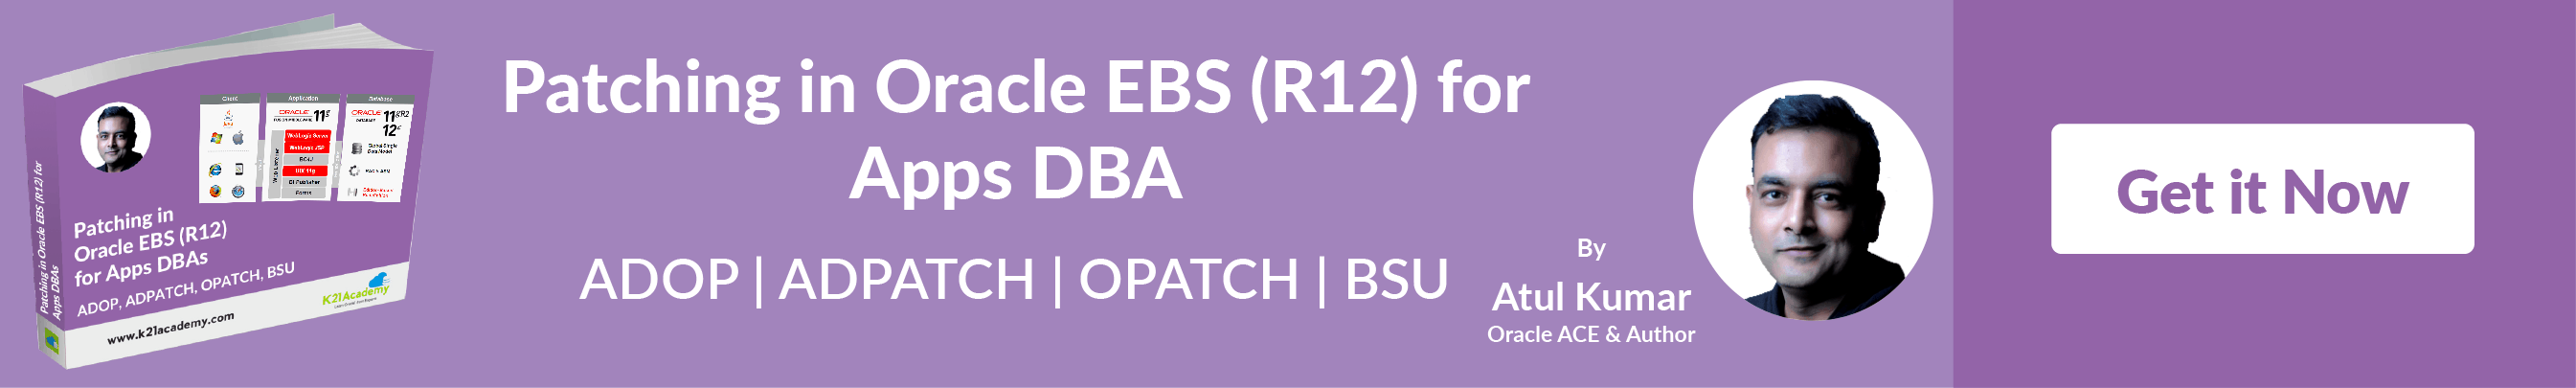 AppsDBA Patching FREE Guide